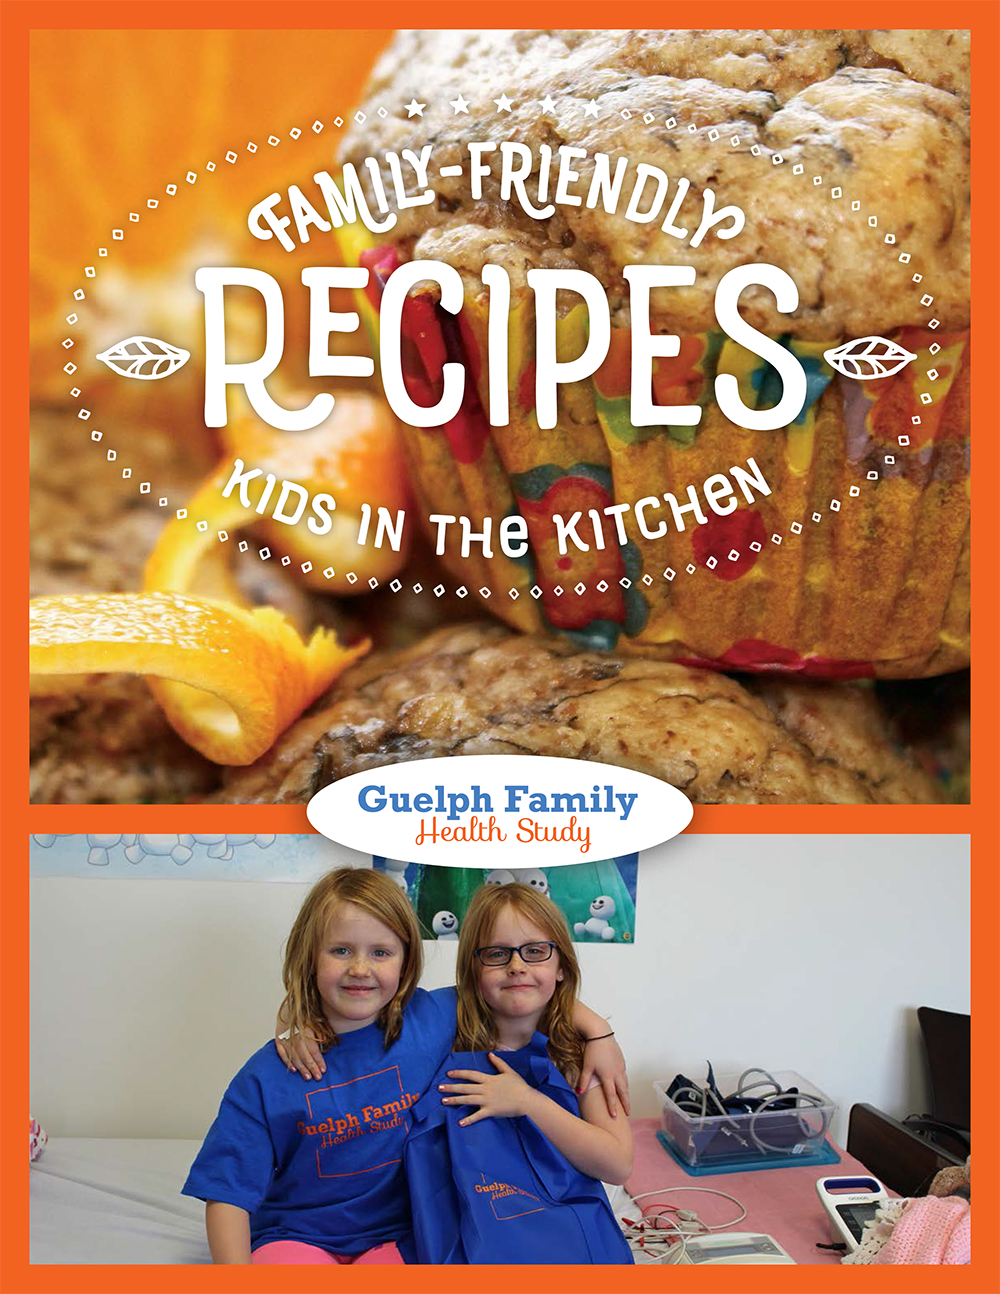 This recipe book contains family-friendly, seasonal recipes that families can enjoy together.  These easy-to-prepare recipes are quick and tasty and aim to help families increase their fruit and vegetable intake.